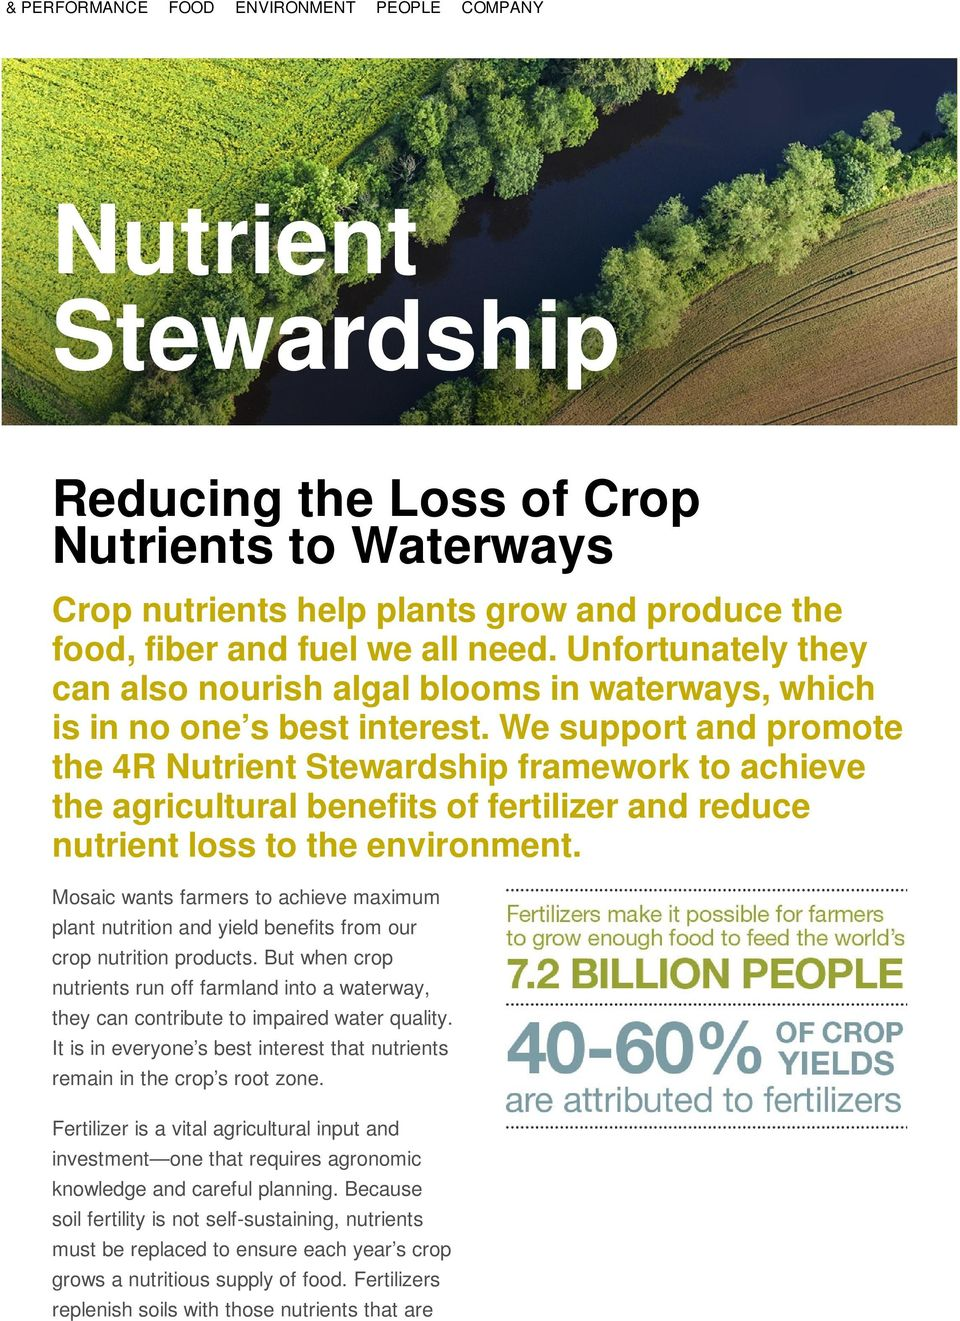 We support and promote the 4R Nutrient Stewardship framework to achieve the agricultural benefits of fertilizer and reduce nutrient loss to the environment.